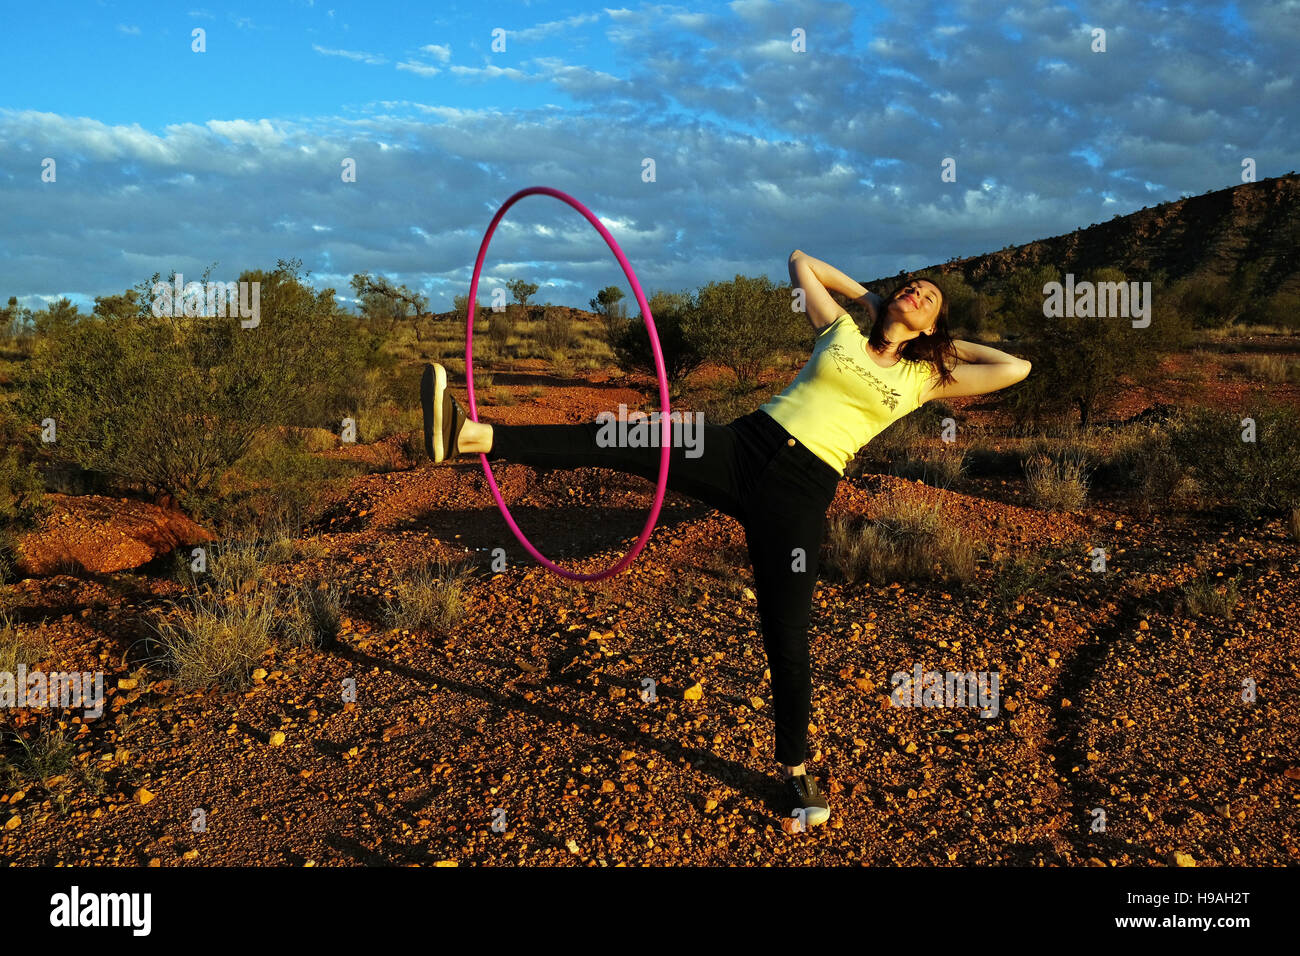 A woman exercises with a hula hoop in Alice Springs,  the MacDonnell Ranges, Northern Territory, Central Australia - Stock Image